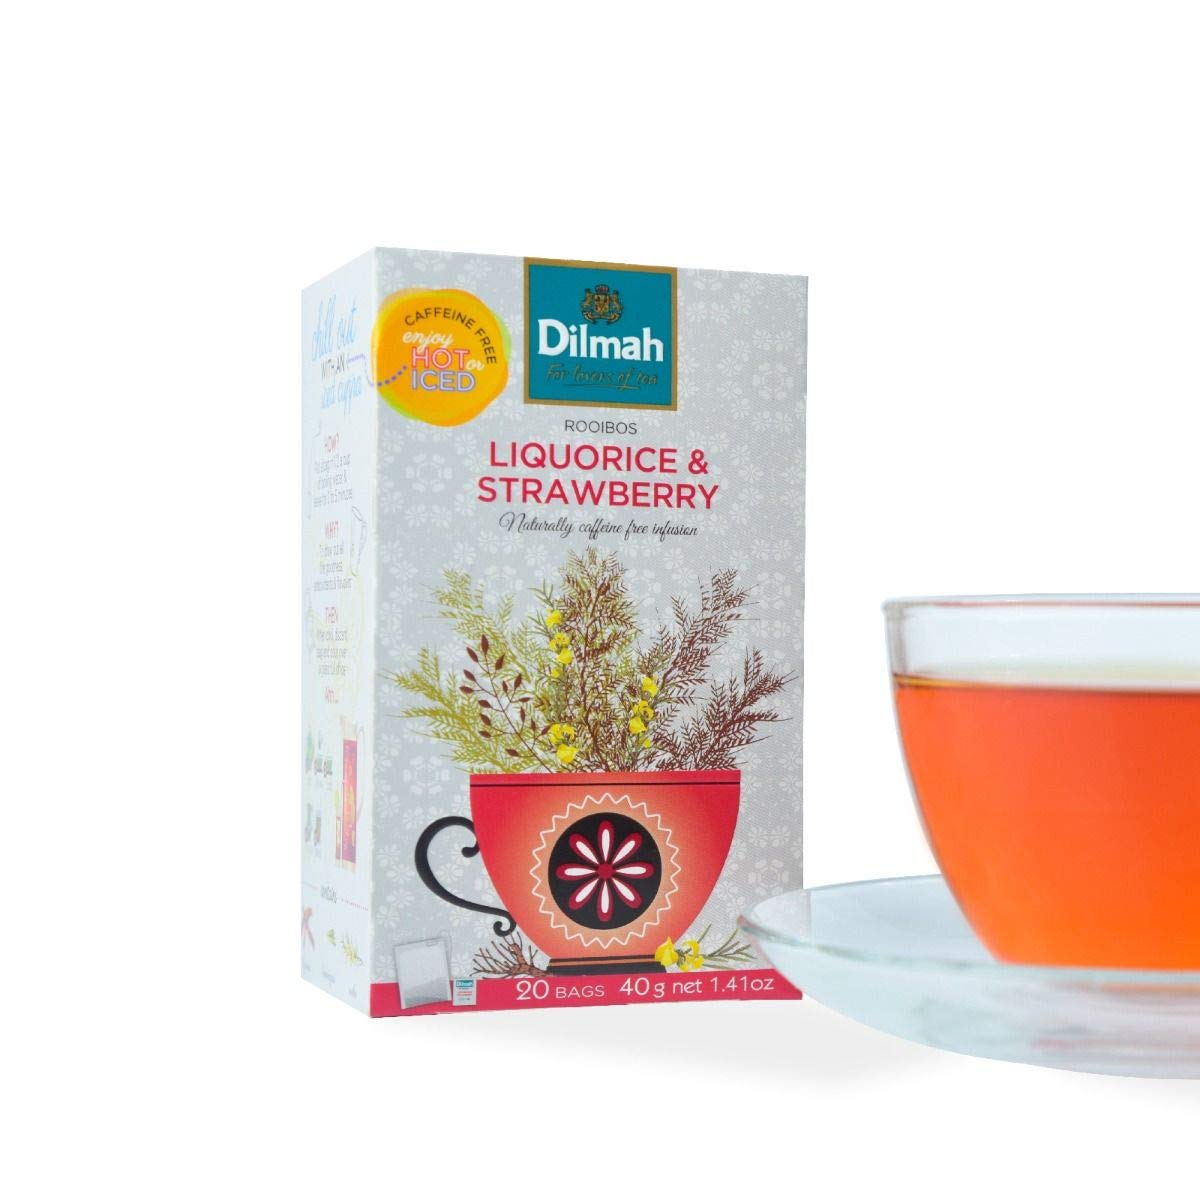 Dilmah Red Rooibos with Liquorice and Strawberry Tea - 20 Tea Bags X 8 Pack - Naturally Caffeine Free by Dilmah